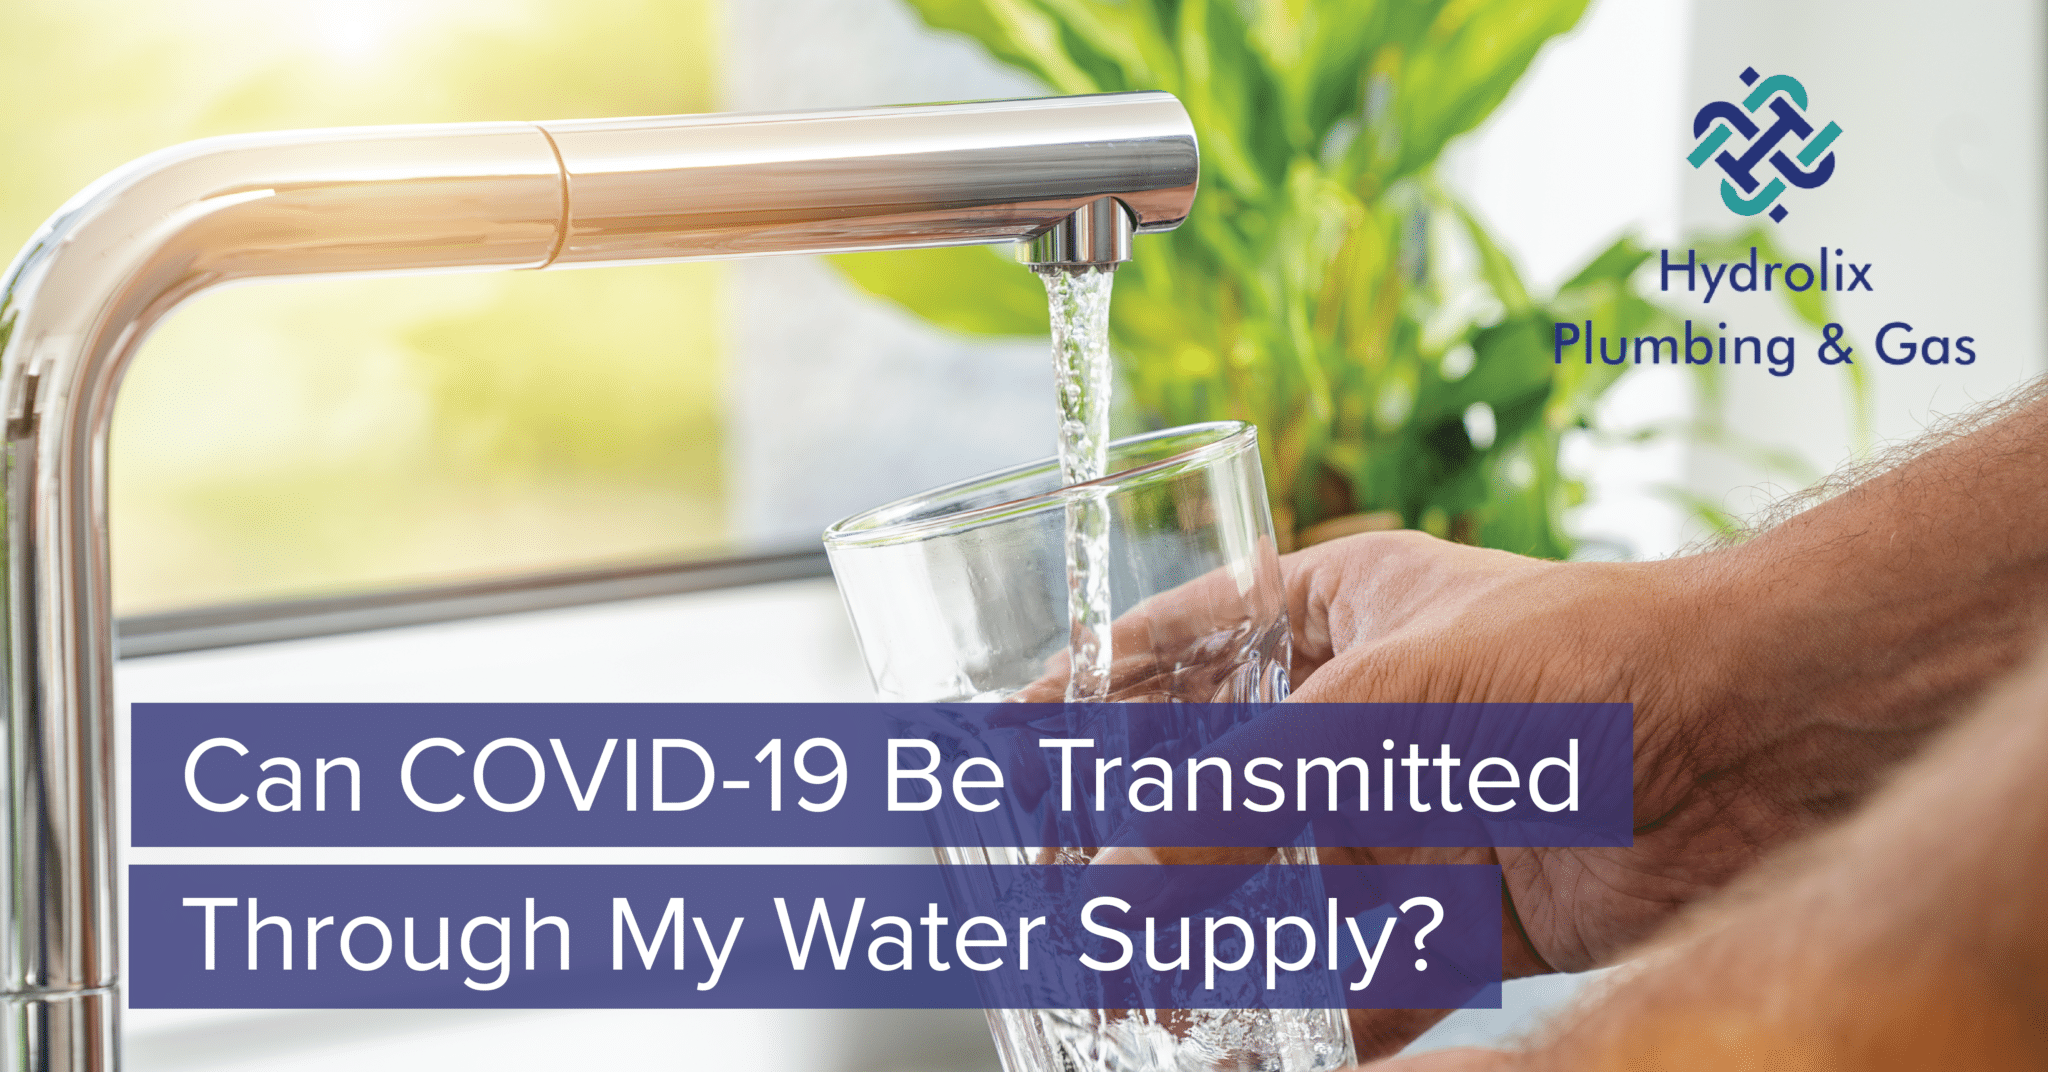 Can COVID-19 Be Transmitted Through My Water Supply?